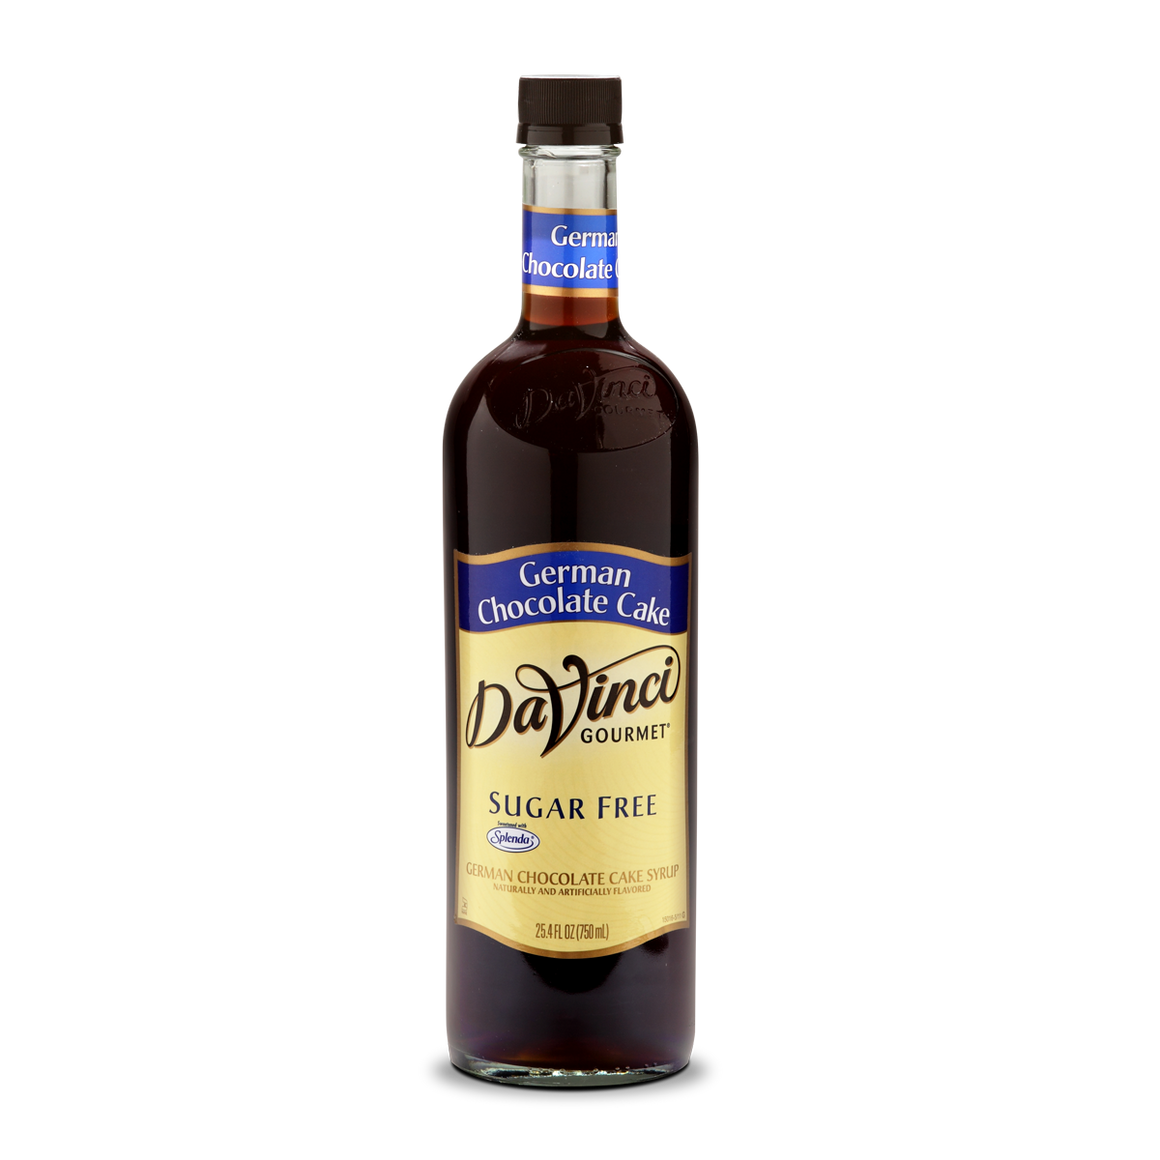 DaVinci - Sugar Free Syrup - German Chocolate Cake - 25.4 fl oz Bottle